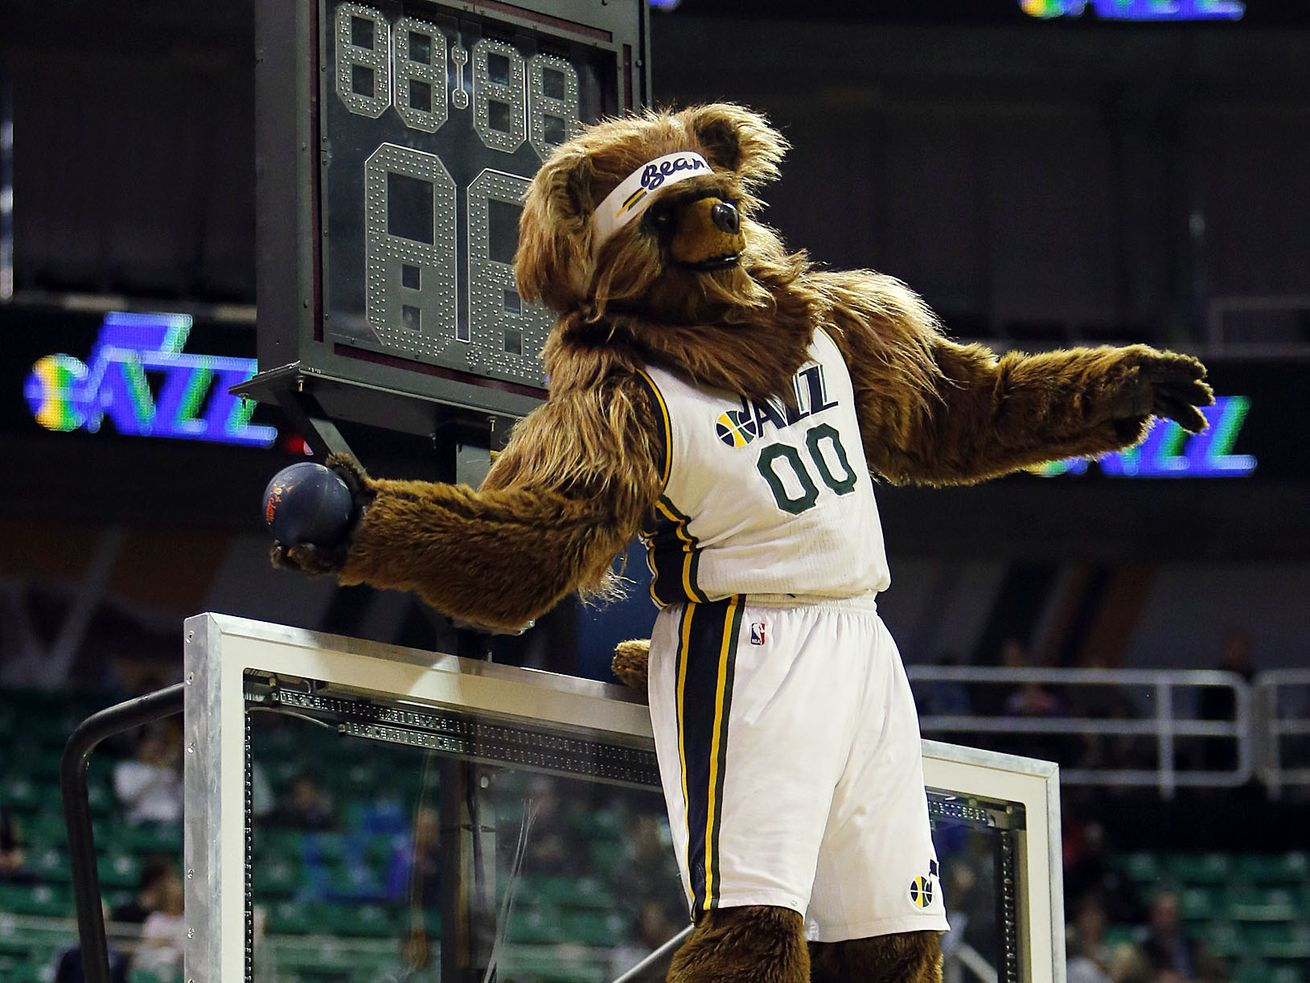 Donald Trump once got dunked on by the Utah Jazz Bear in Salt Lake City. Here's the video